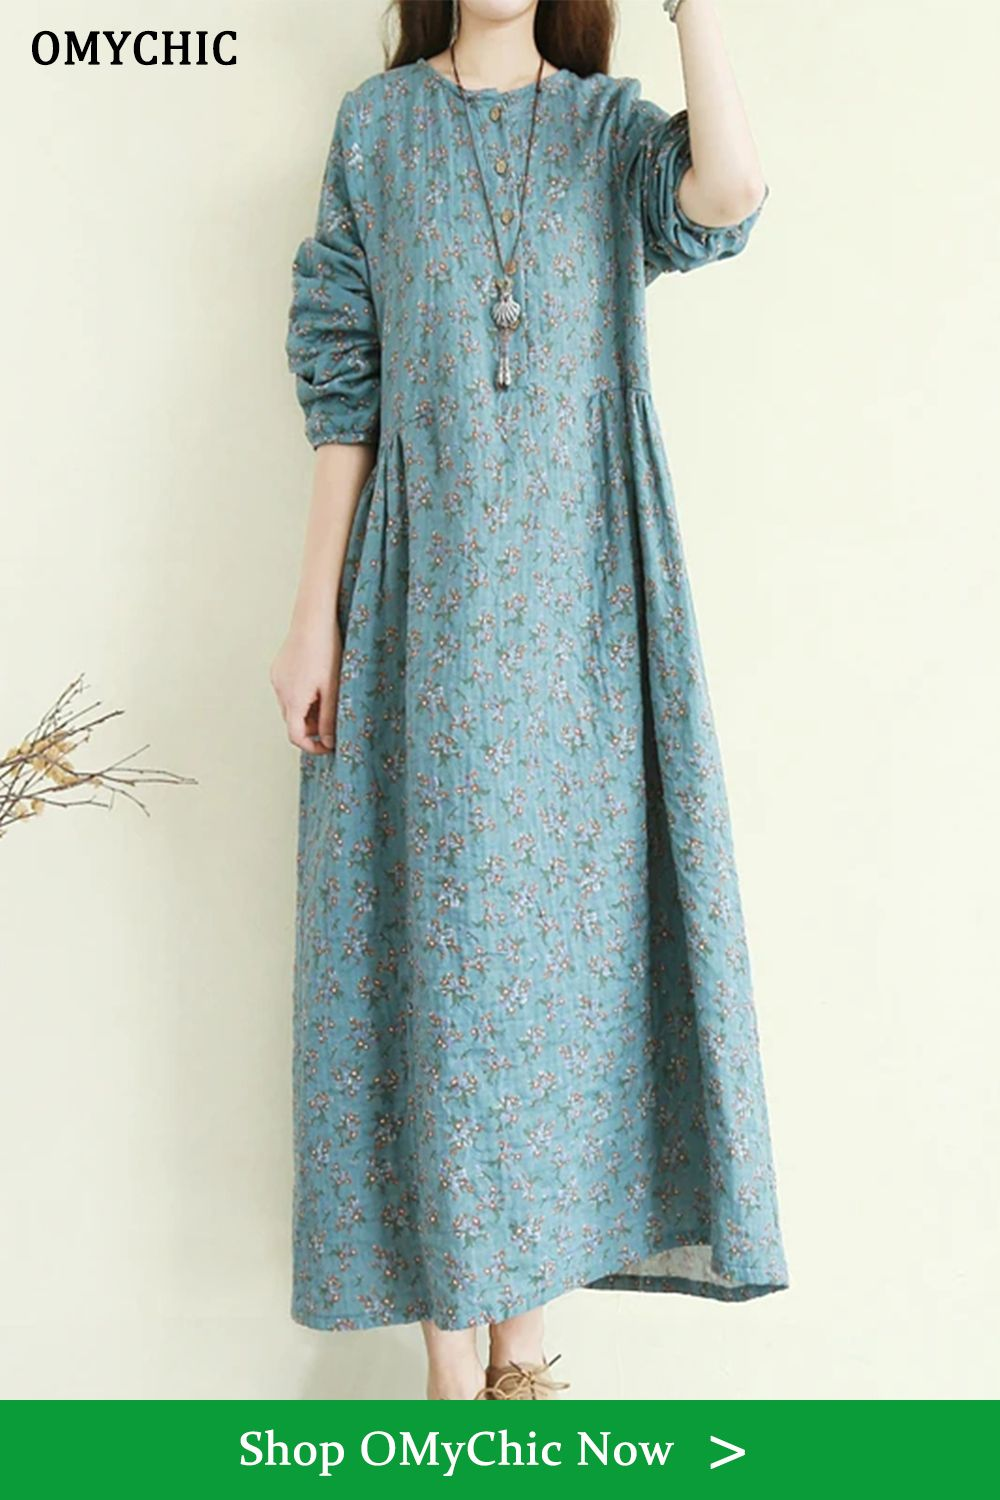 Women O Neck Button Down Cotton Dress Top Quality Sleeve Blue Floral Maxi Dresses In 2021 Blue Floral Maxi Dress Cotton Dresses Maxi Dress [ 1500 x 1000 Pixel ]